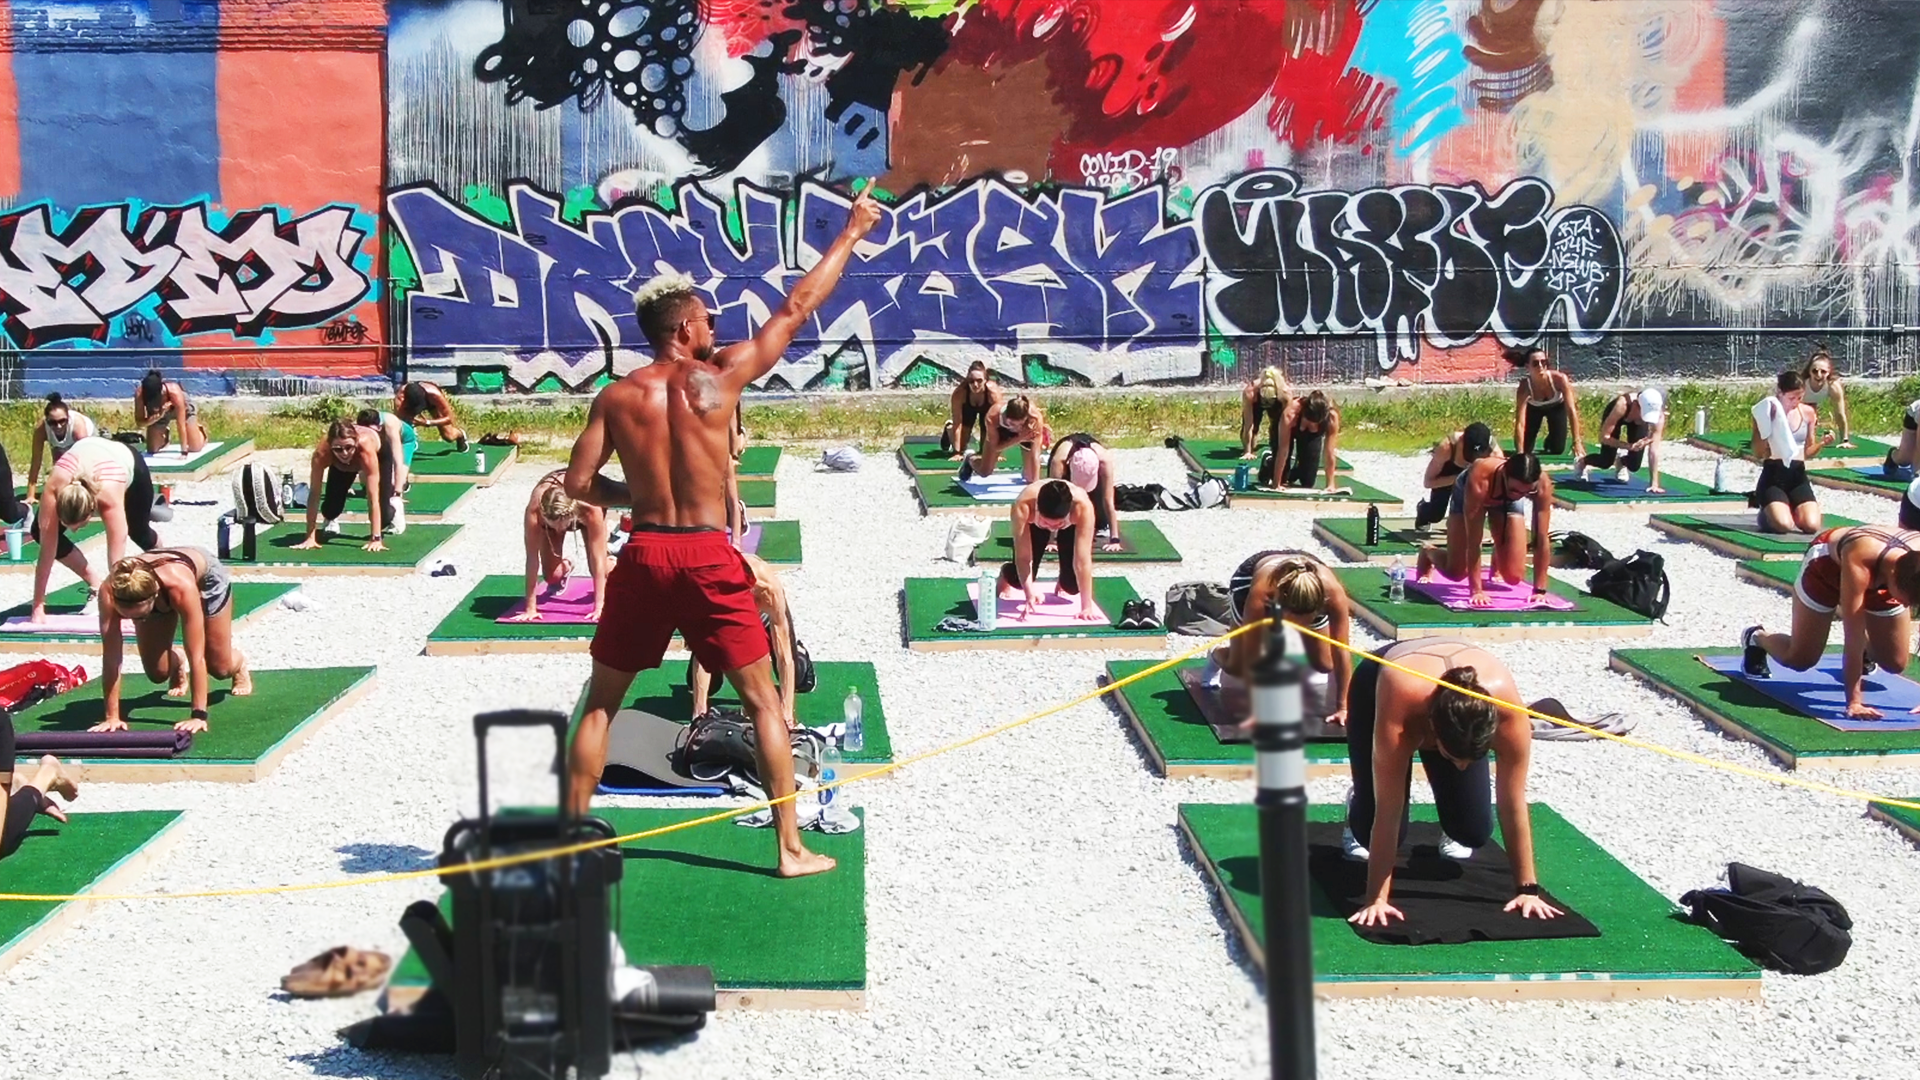 In River North, a vacant lot has been transformed into an outdoor fitness studio